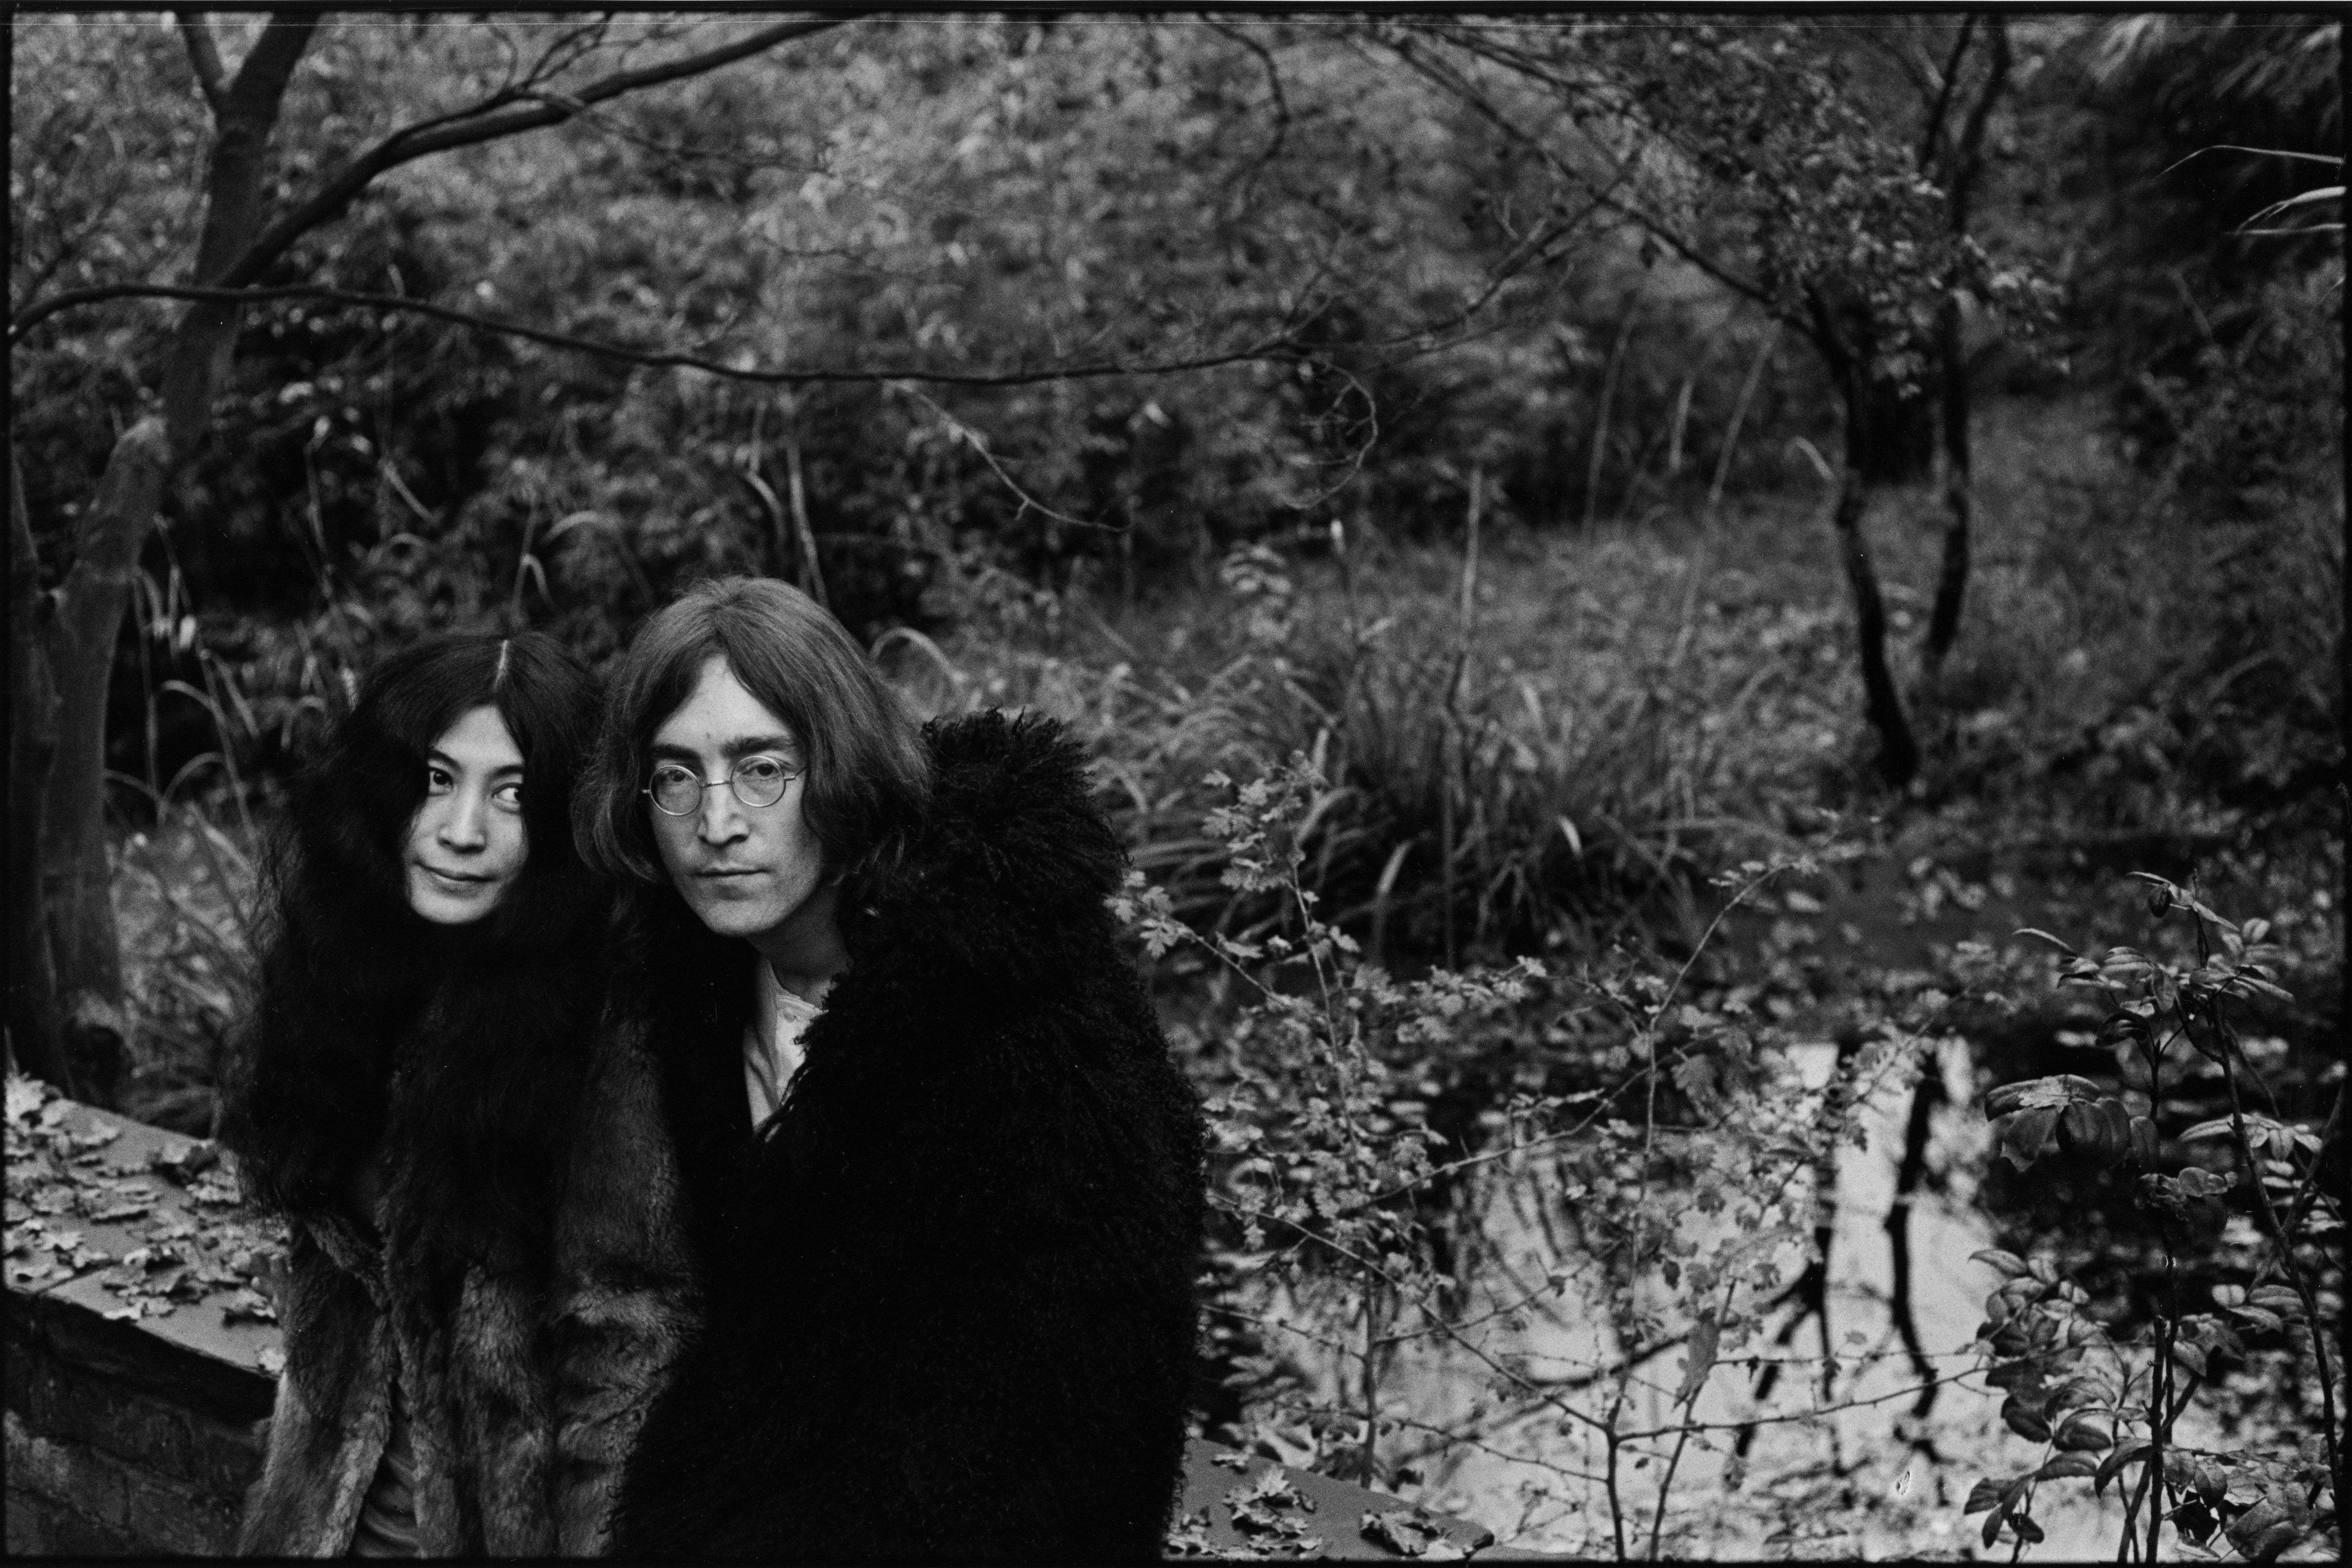 Image Credits: Getty Images / Susan Wood | Portrait of Japanese-born artist and musician Yoko Ono and British musican and artist John Lennon (1940 - 1980), December 1968.